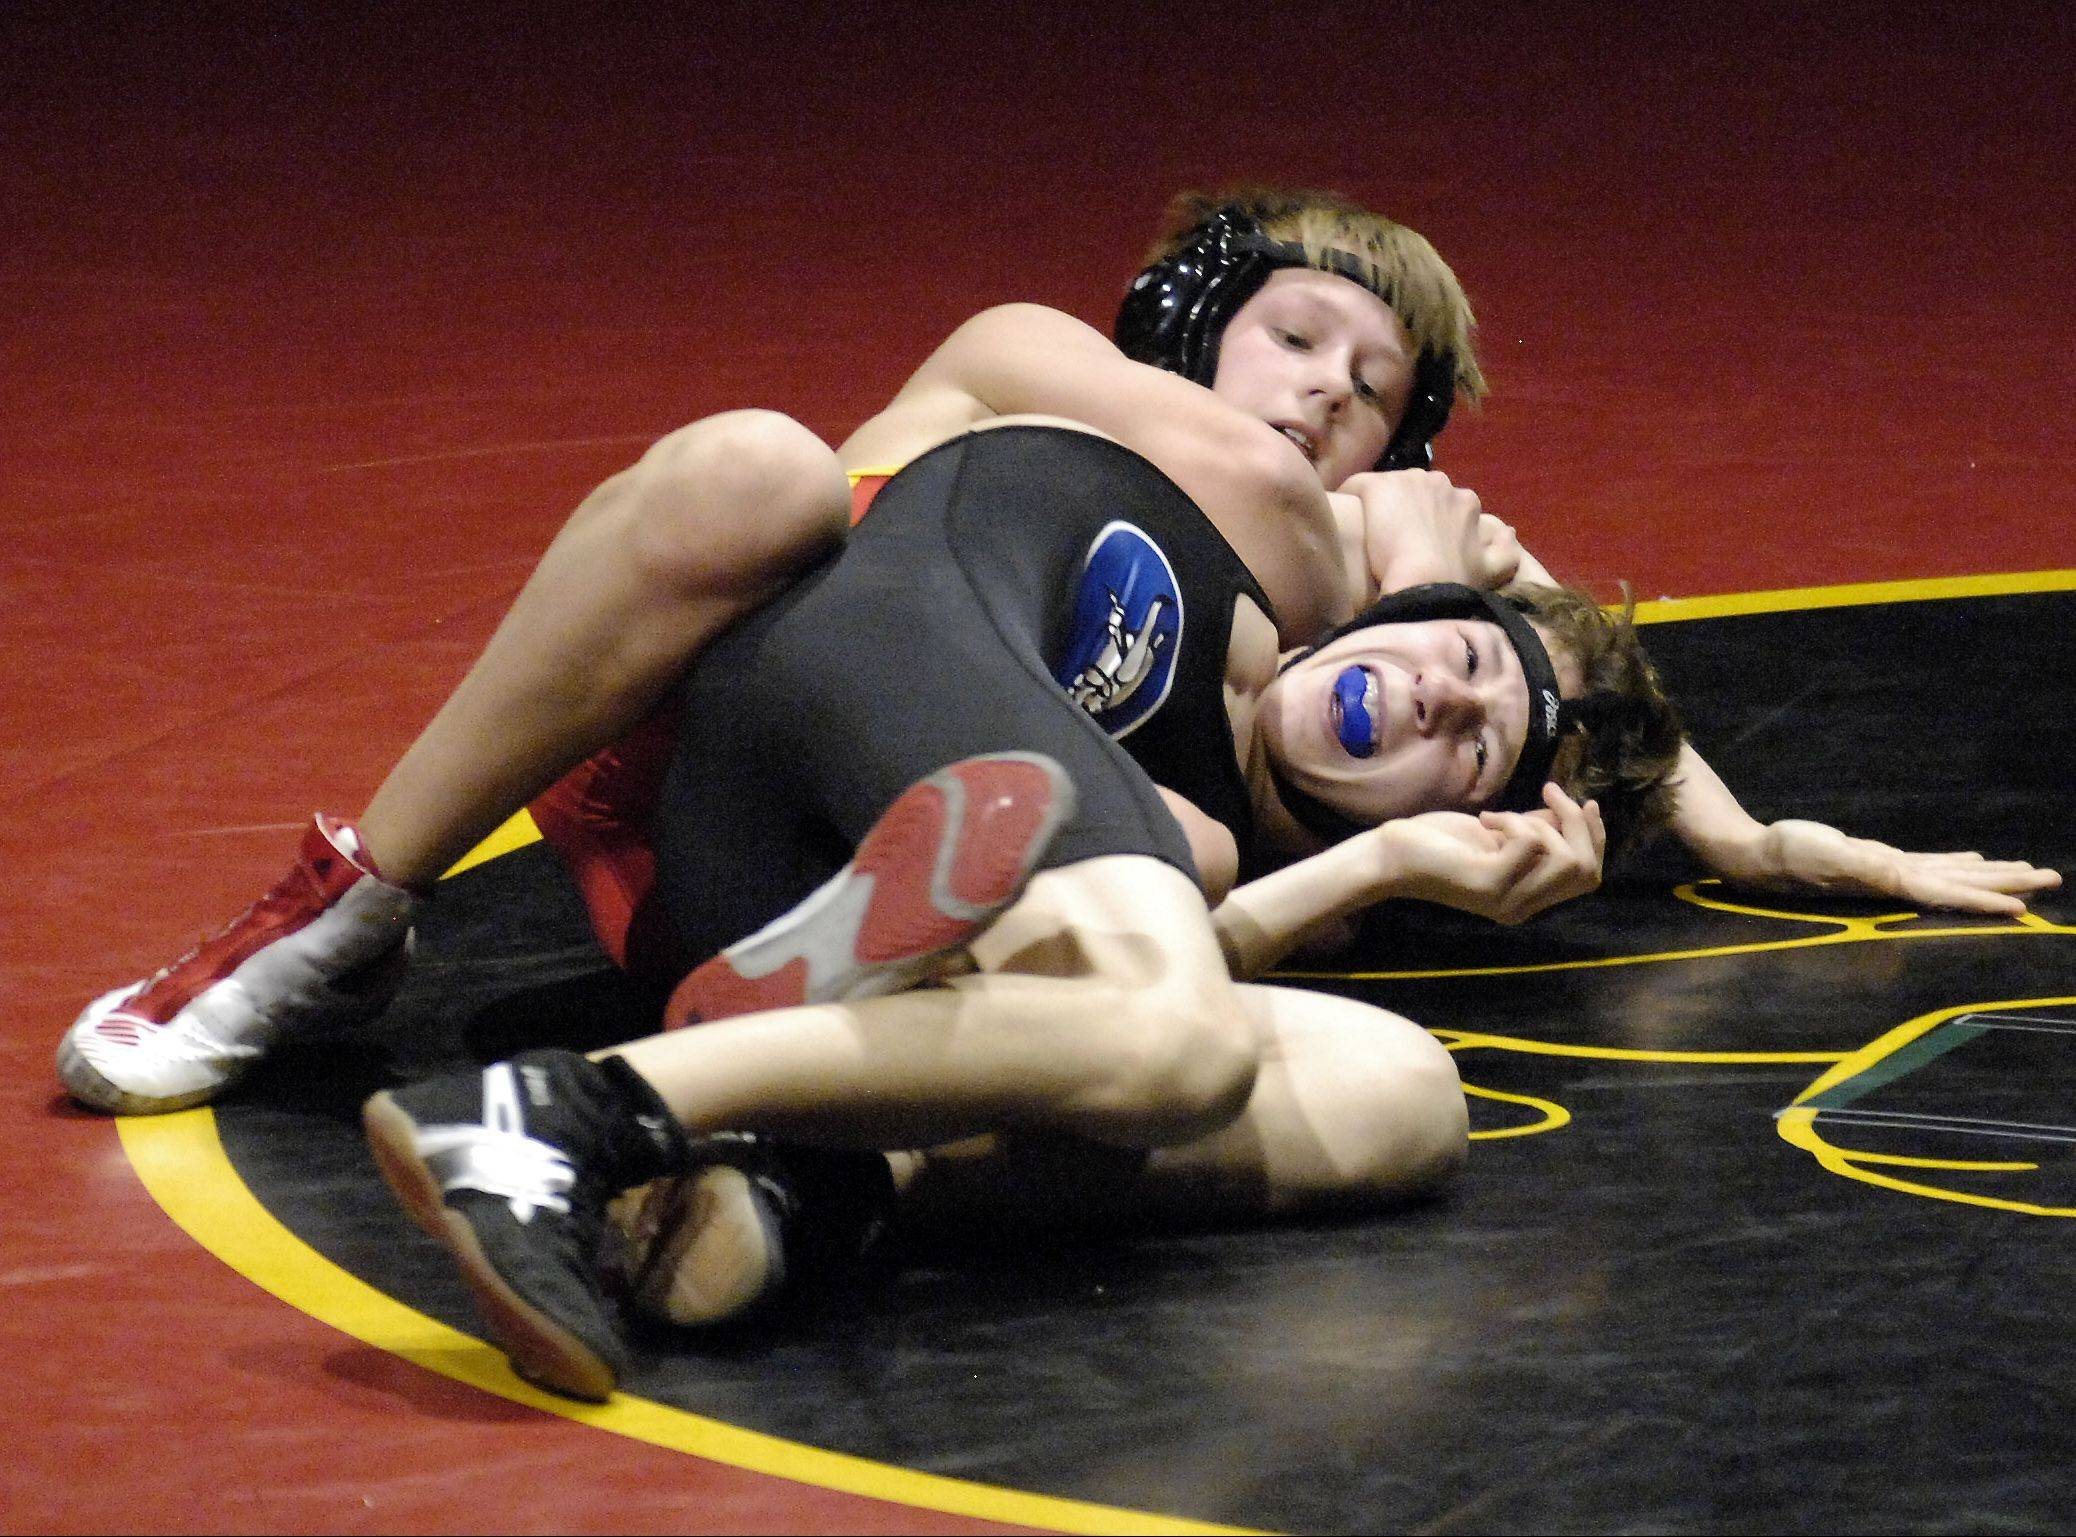 Batavia's Luke Schulz defeated Geneva's Julian Dessens at 113 pounds Thursday at Batavia.